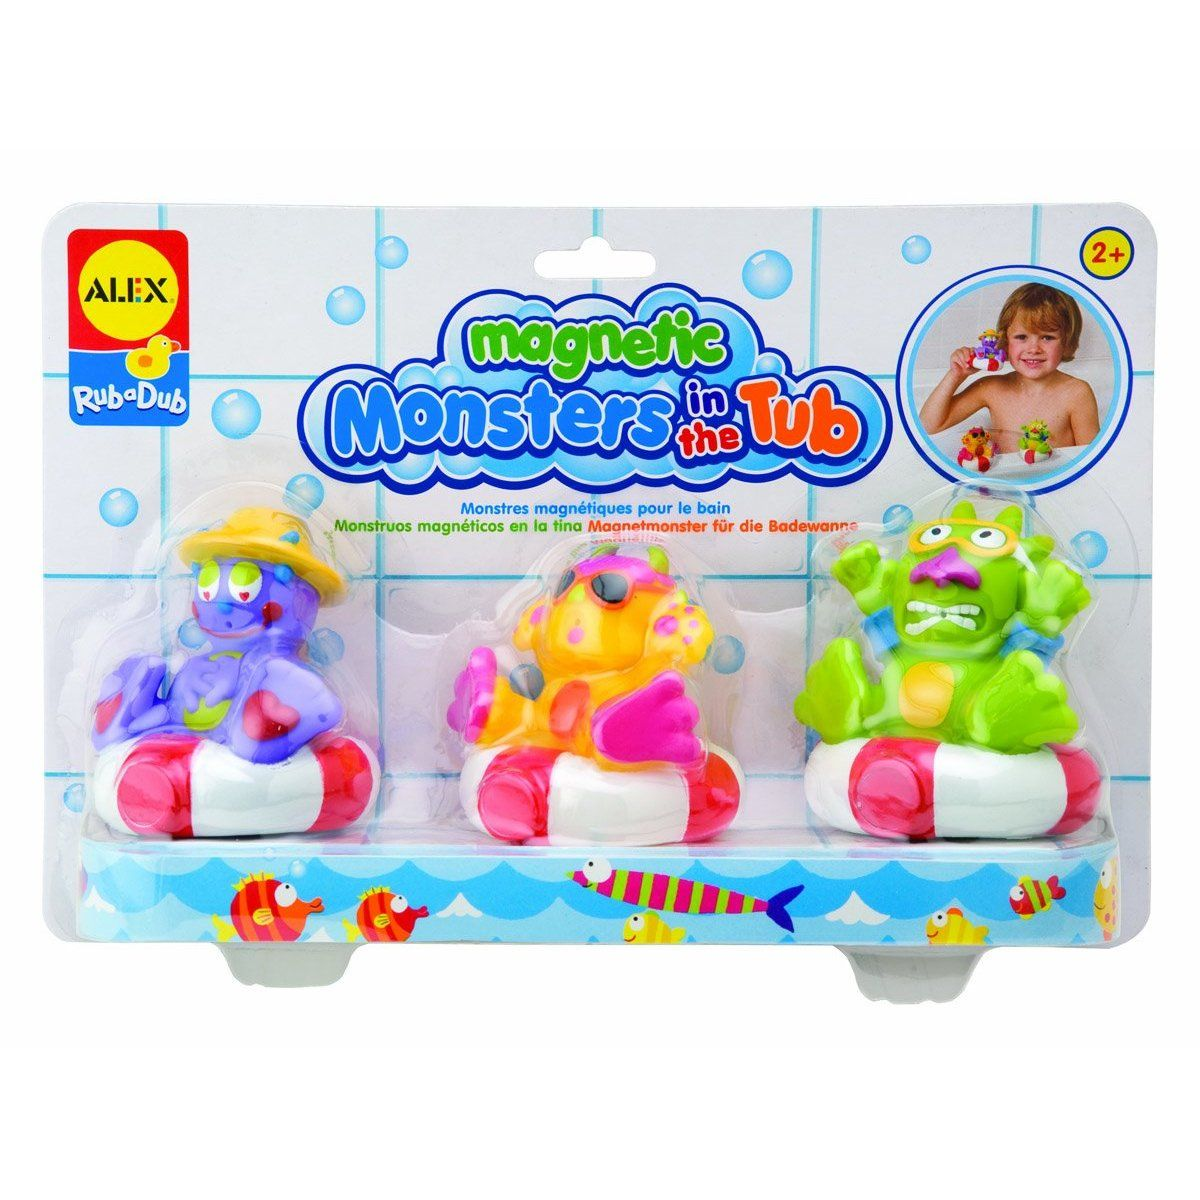 Baby Badewanne Toys R Us Amazon Alex Magnetic Monsters Toys Games Telus How To